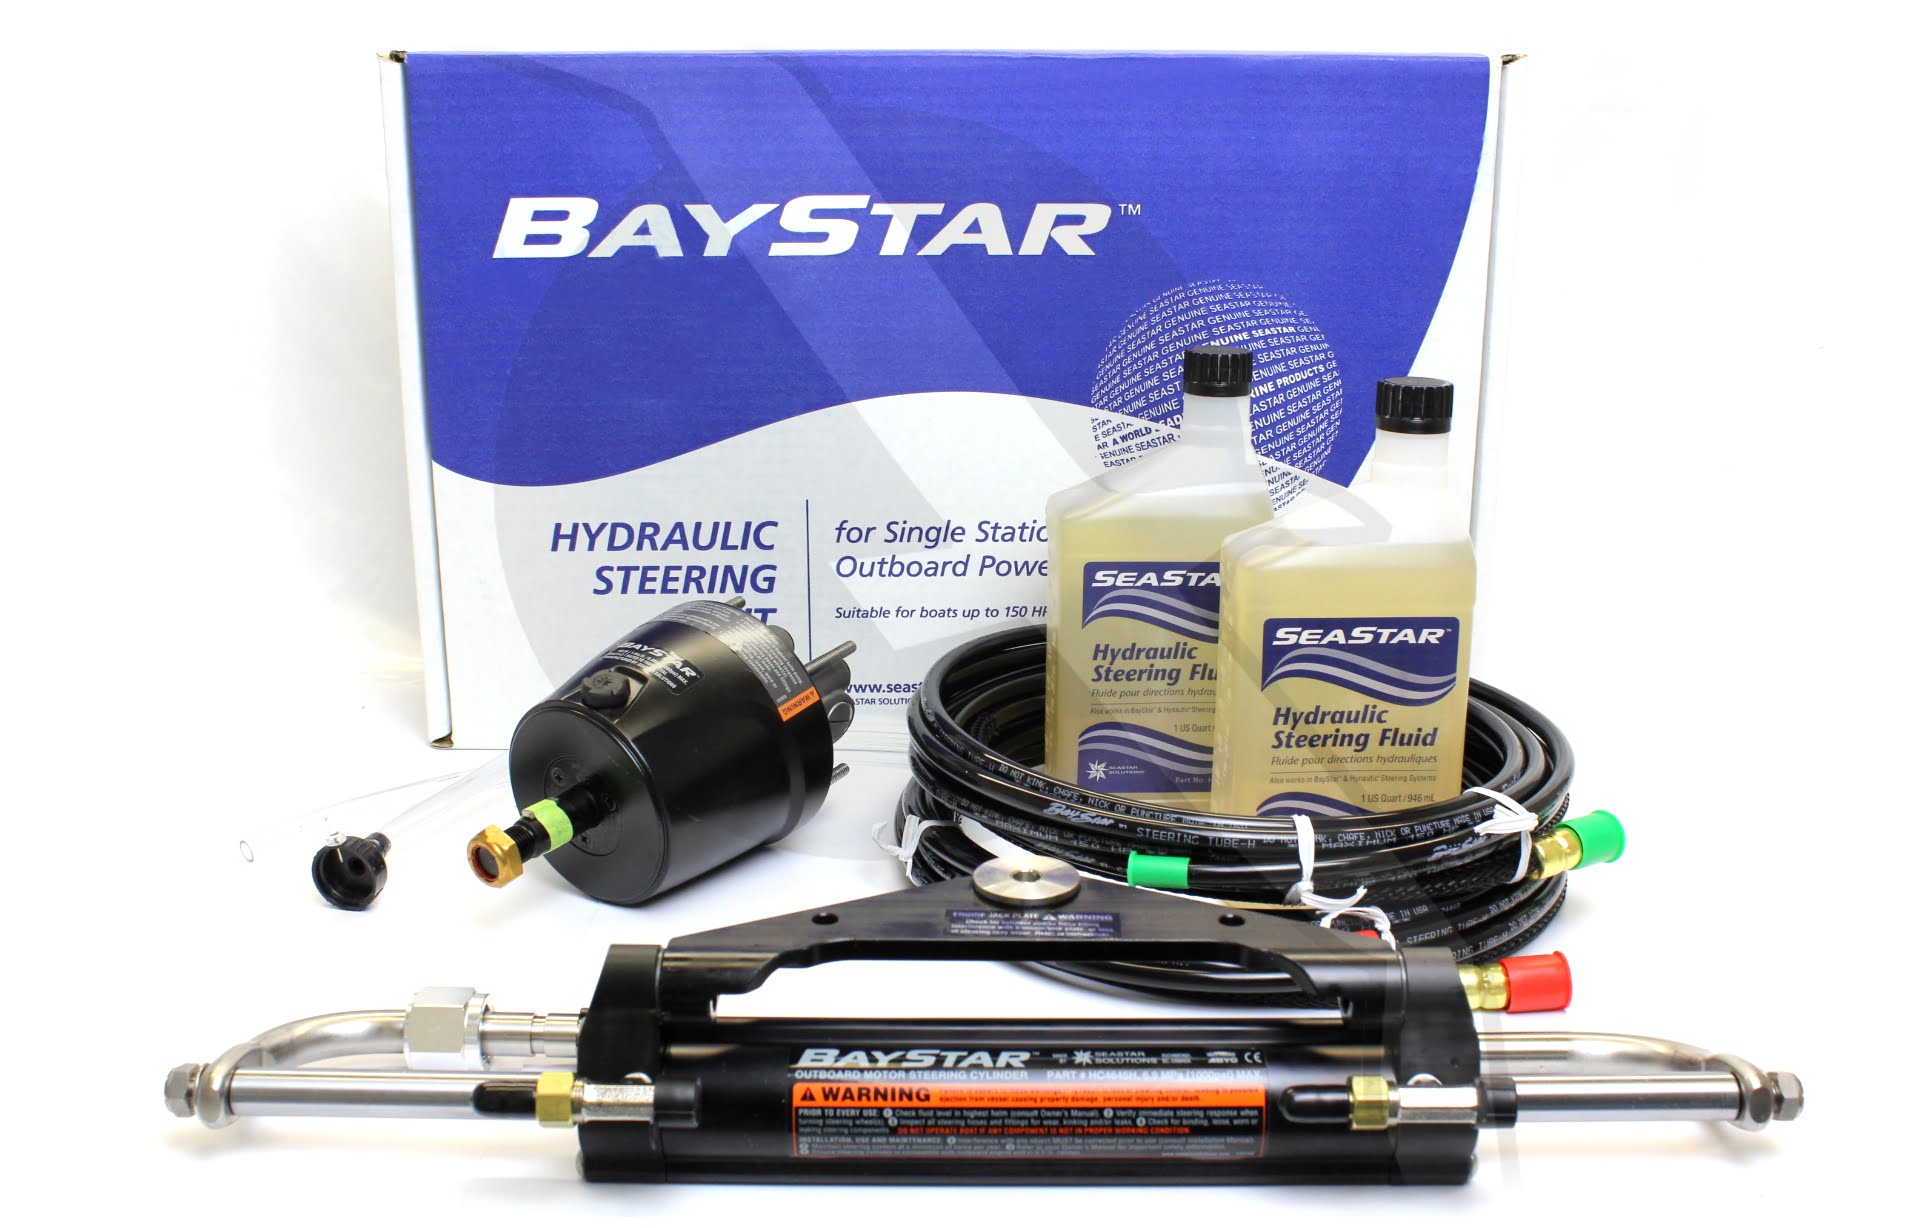 sailormall boat accessories, worldwide shipping baystar premiumbaystar premium hydraulic steering for outboard engines